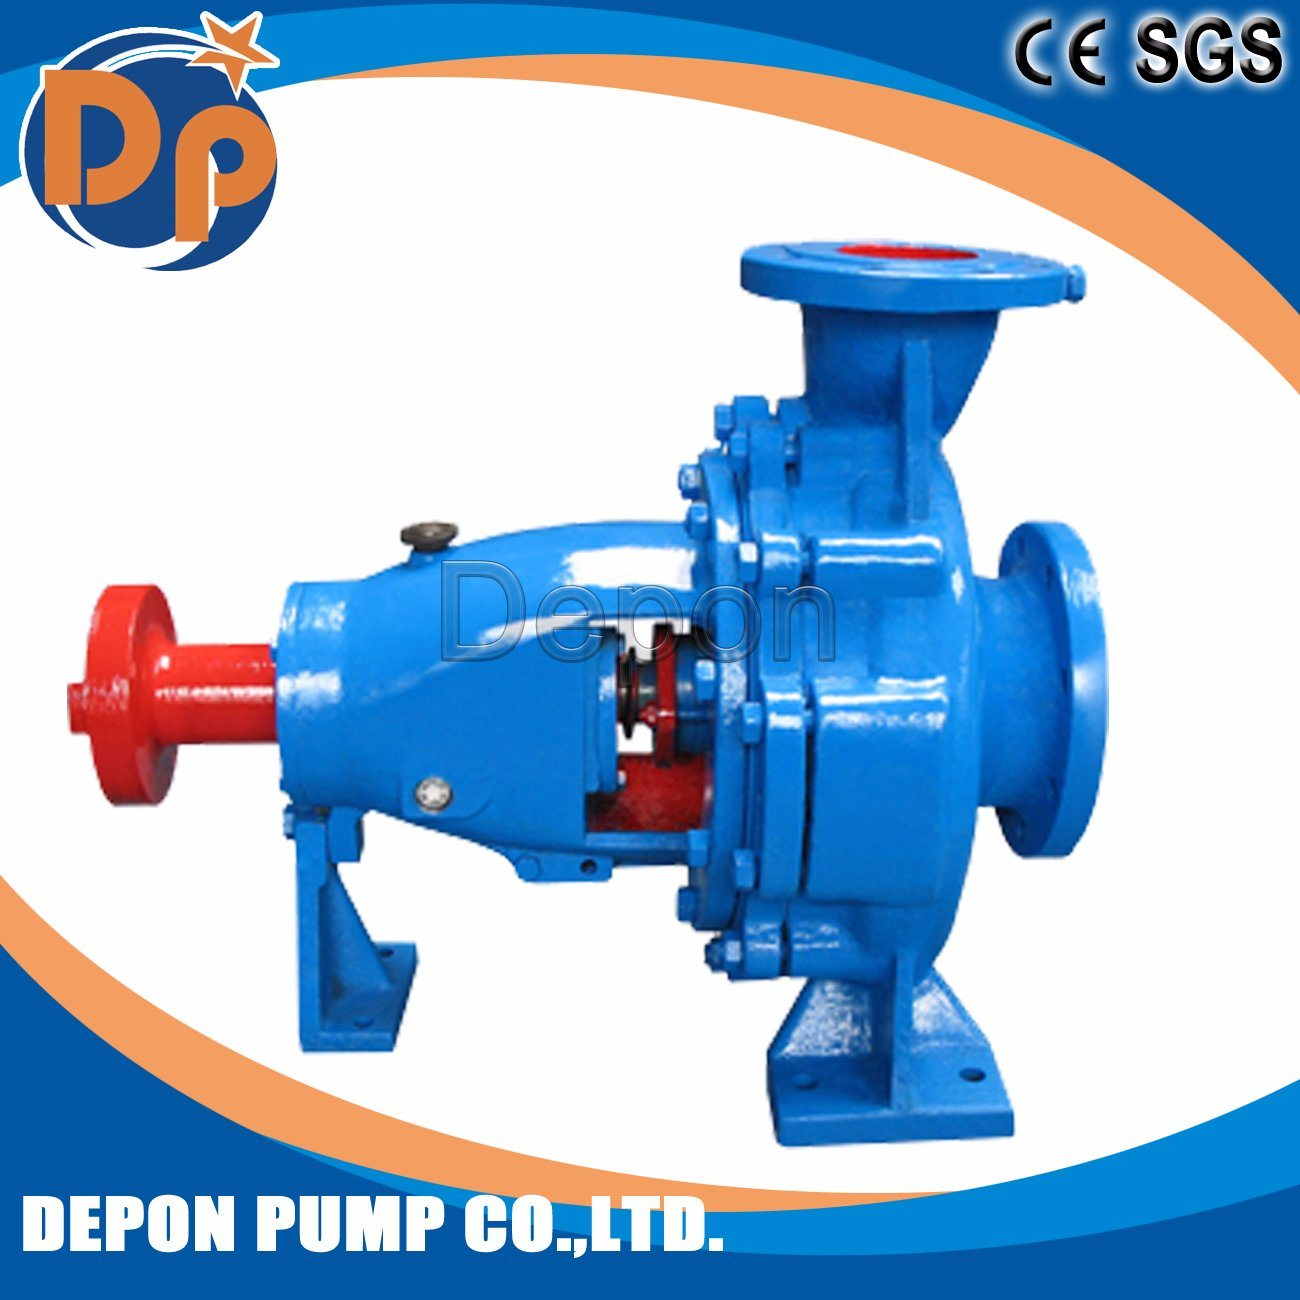 End-Suction Electric Fire Pump Type